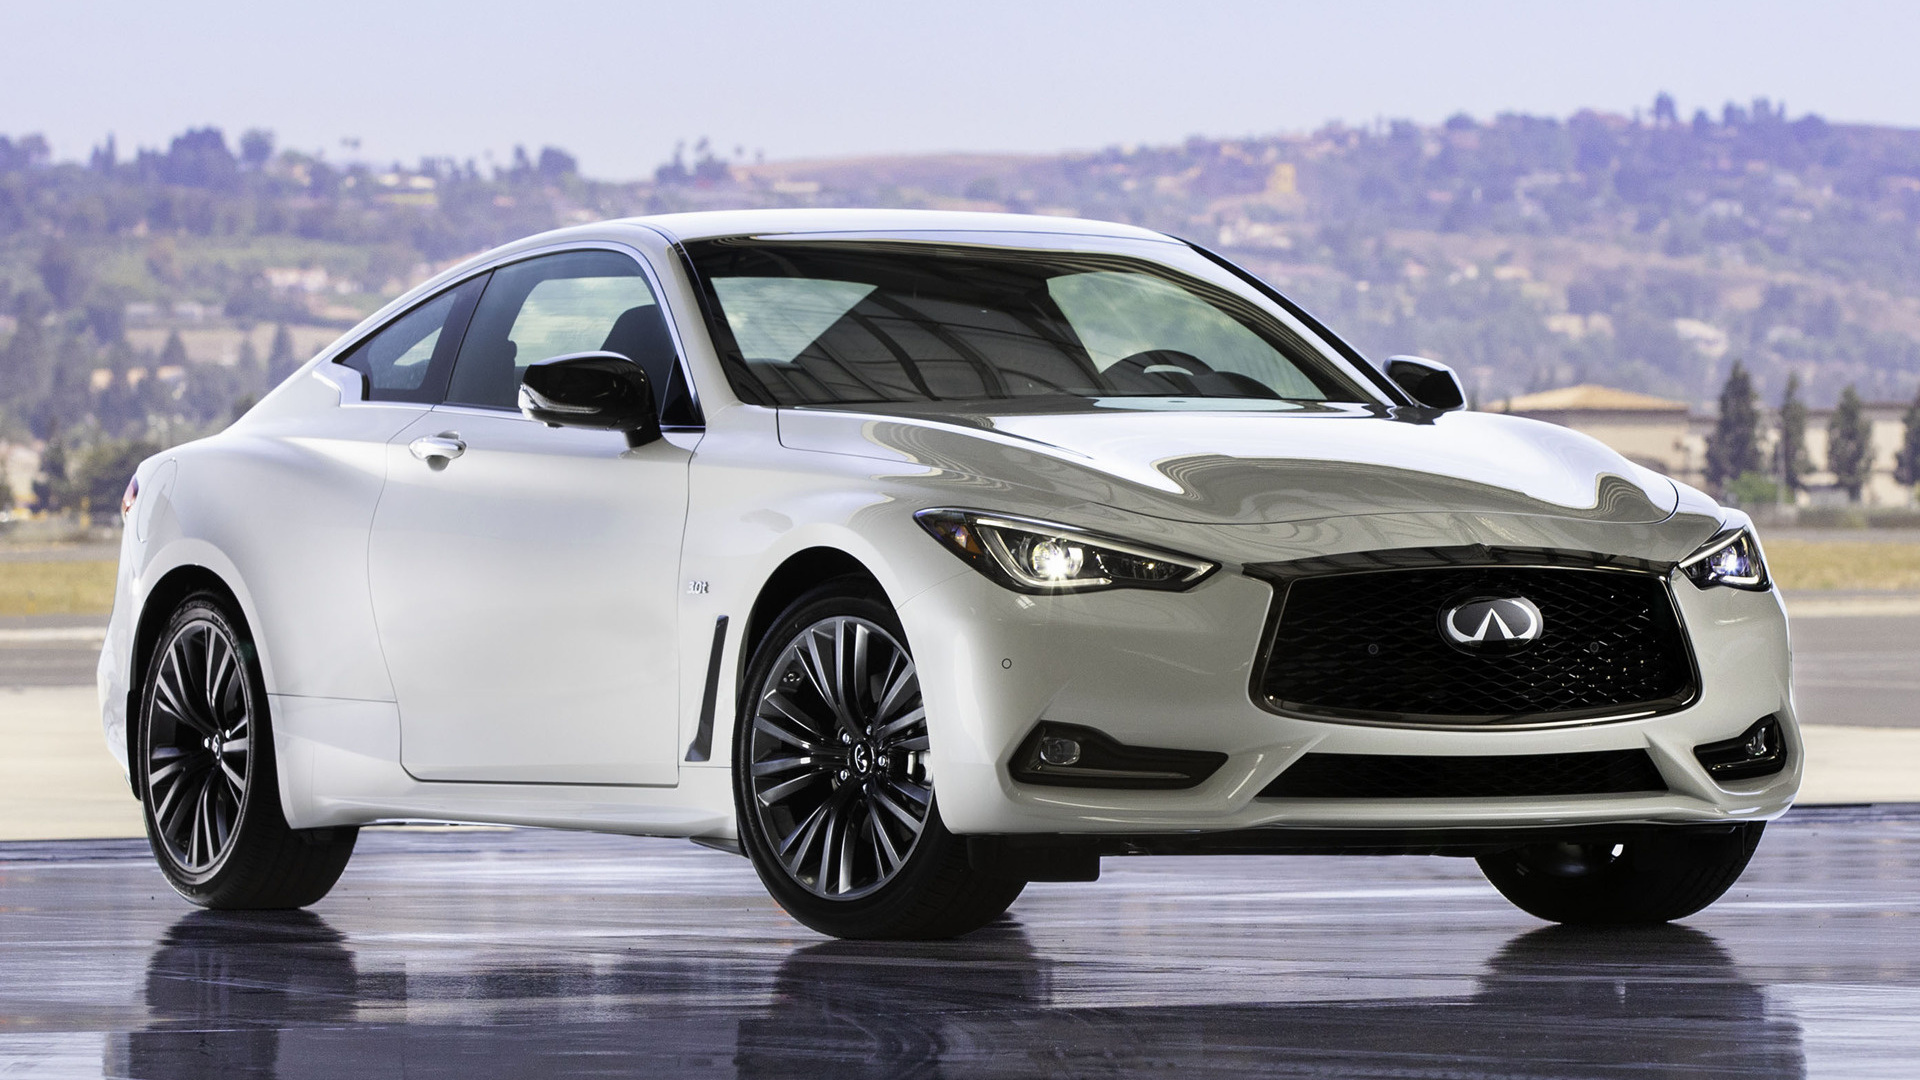 2020 infiniti q60 edition 30  wallpapers and hd images